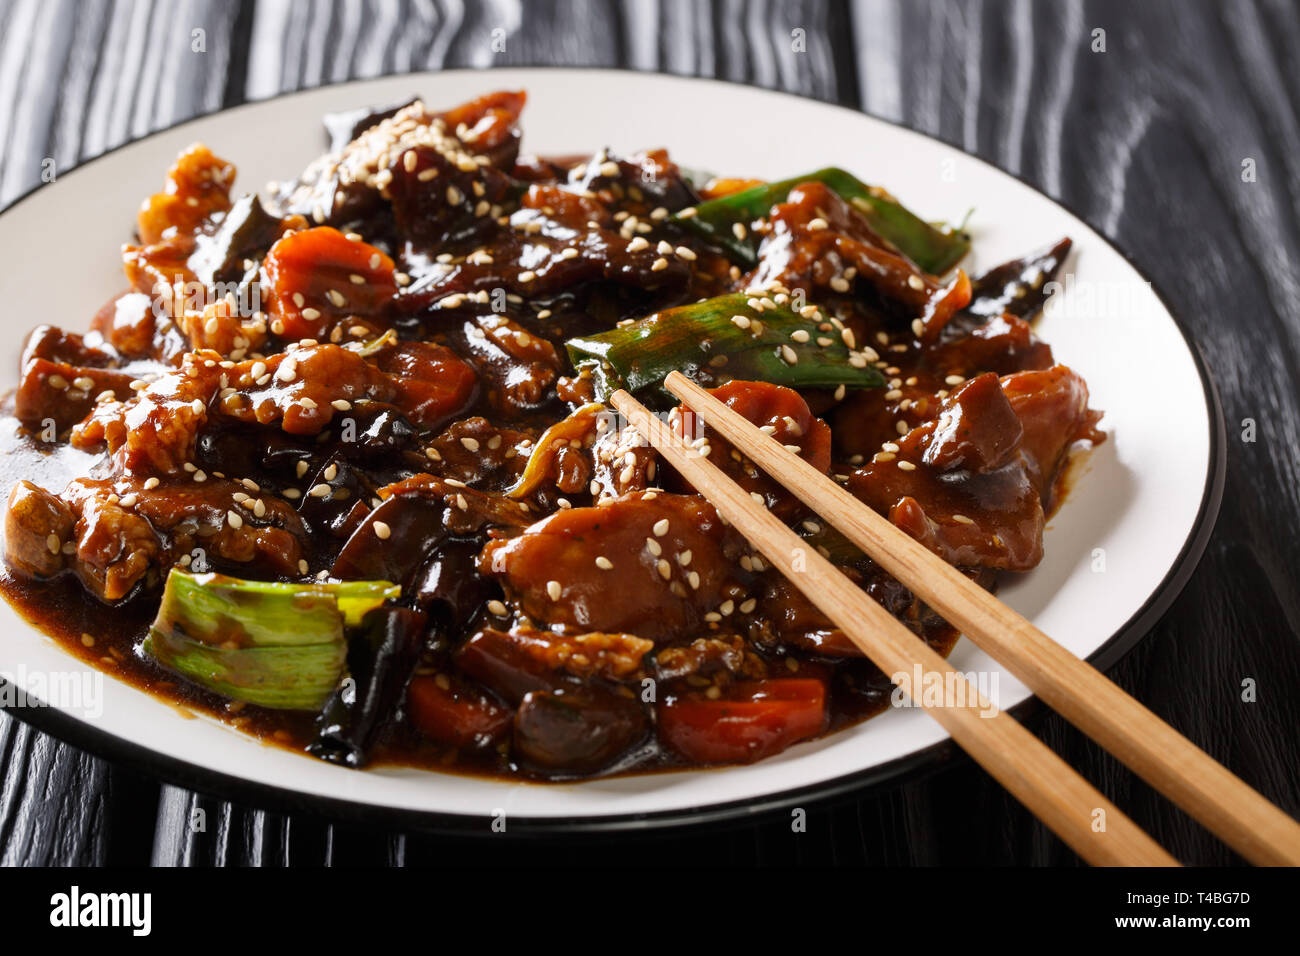 Portion of roast pork with mun mushrooms and vegetables in a sweet and sour sauce closeup on a plate on the table. horizontal - Stock Image